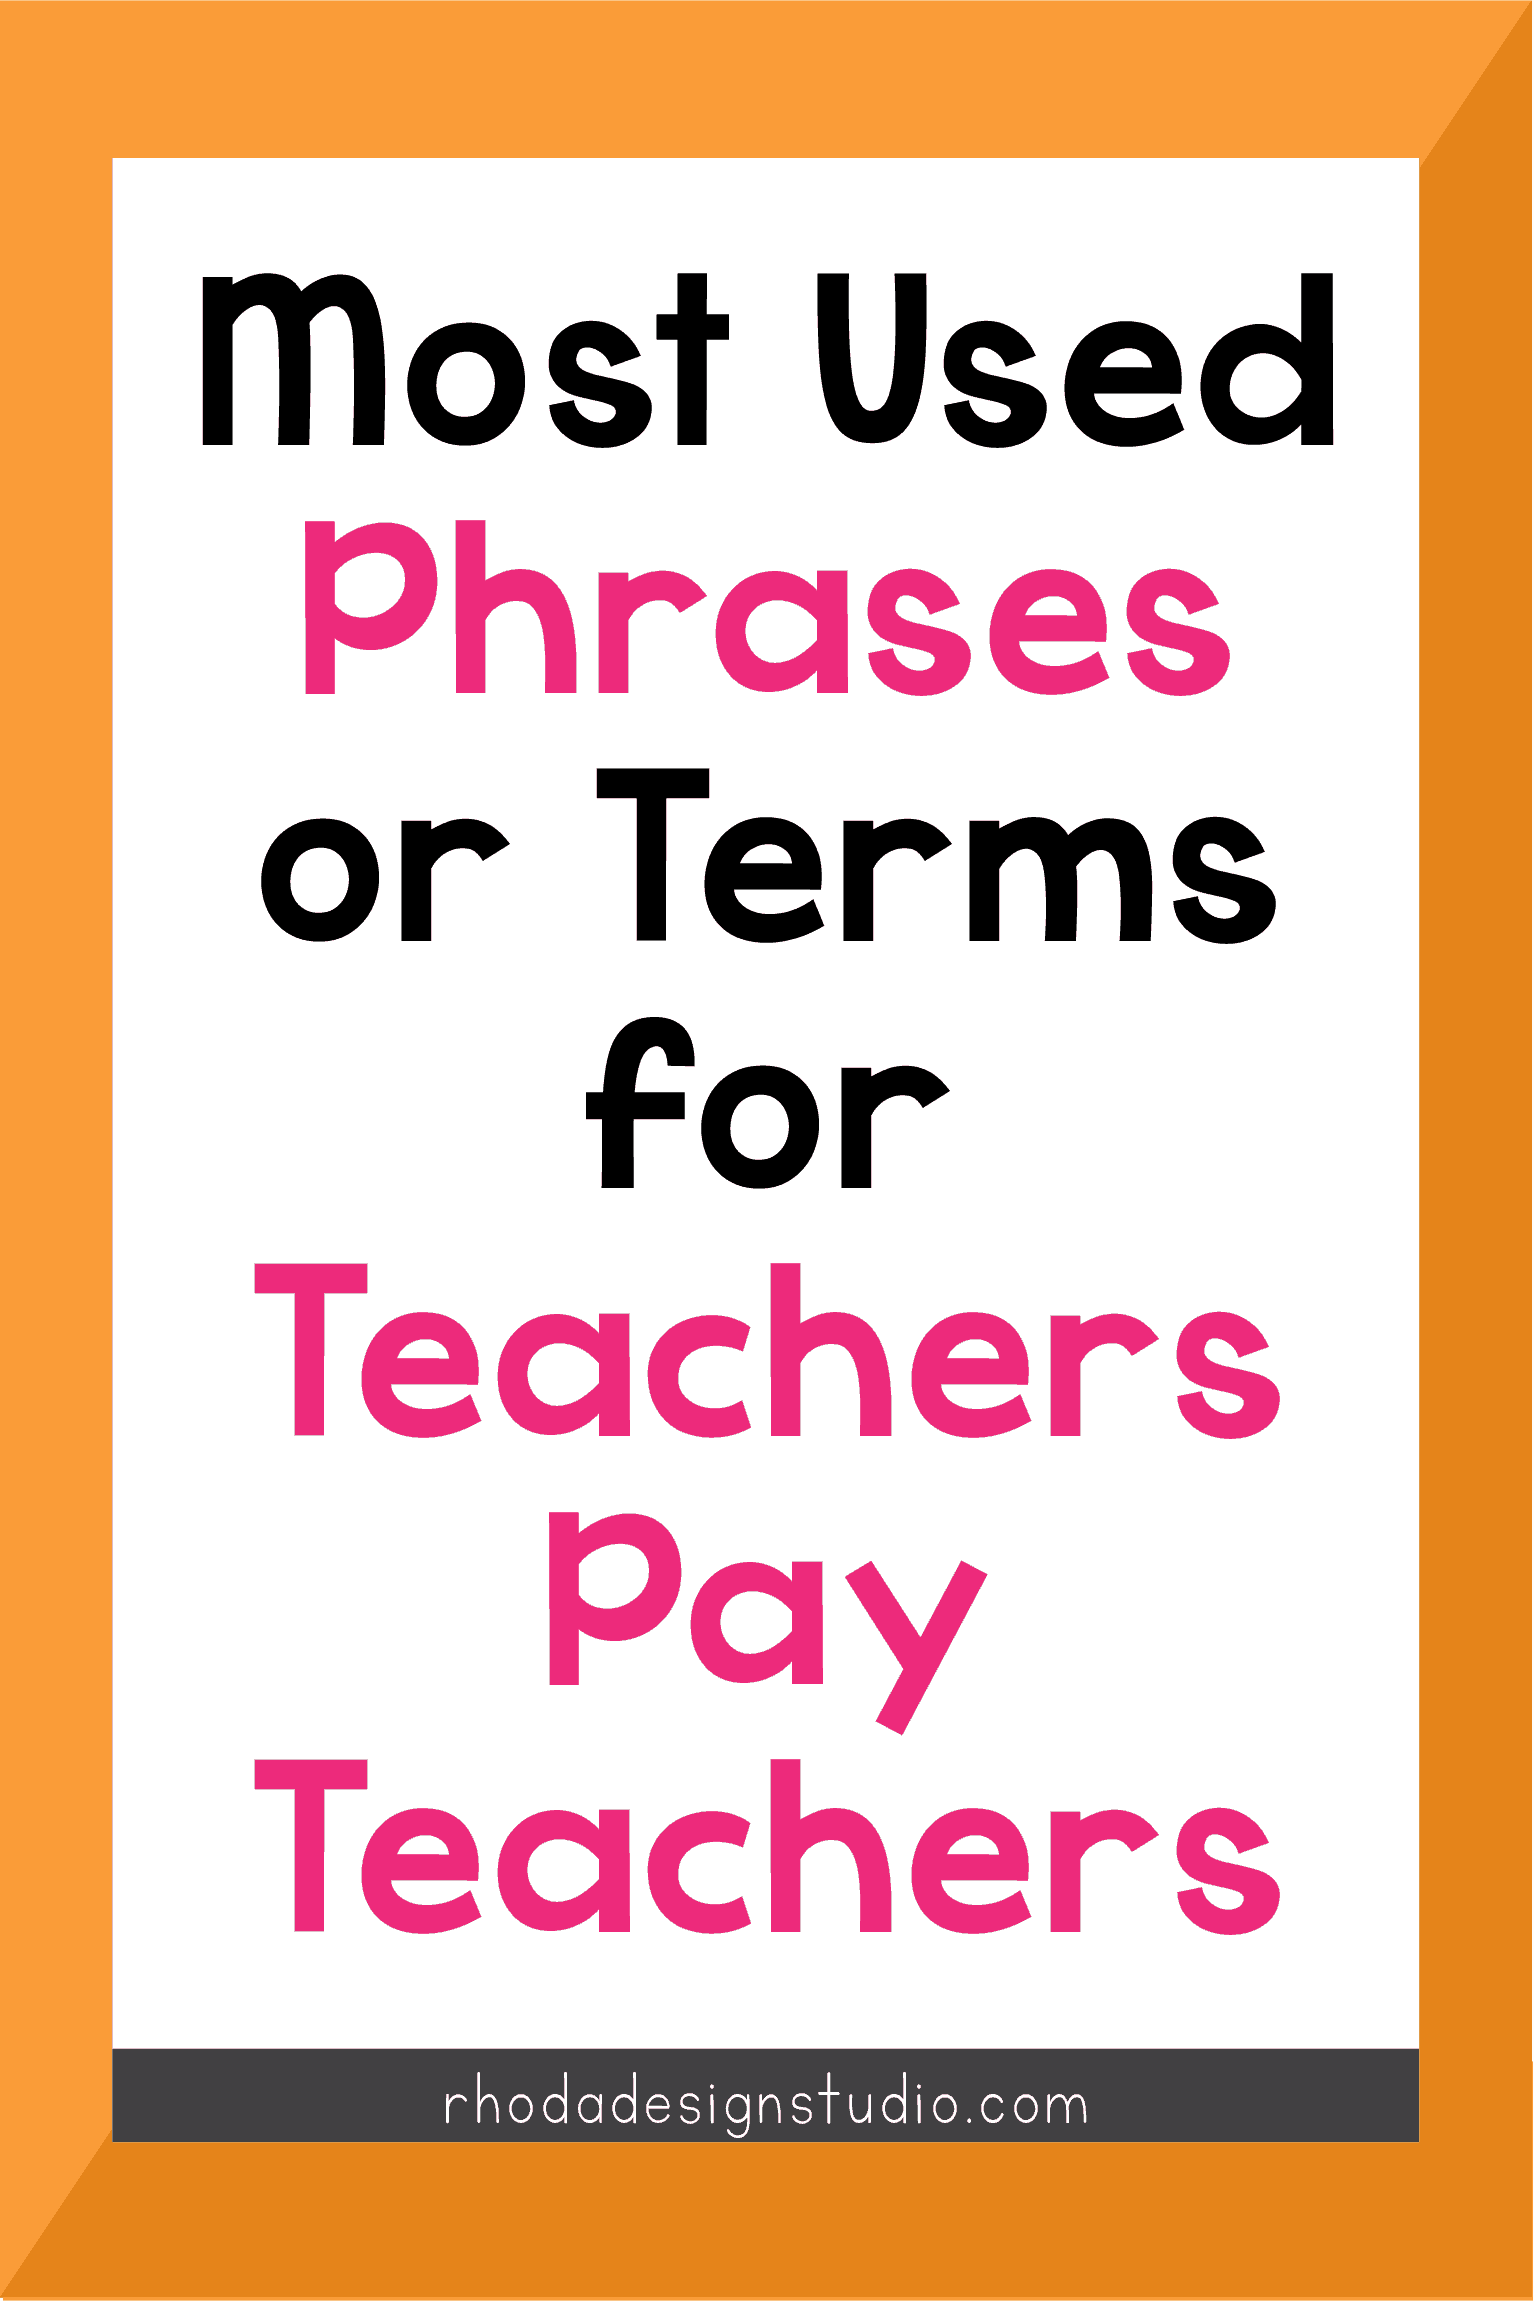 The 9 most common words used by teachers who sell on Teachers Pay Teachers. Get started with your side hustle and learn the terms. Click to read more.